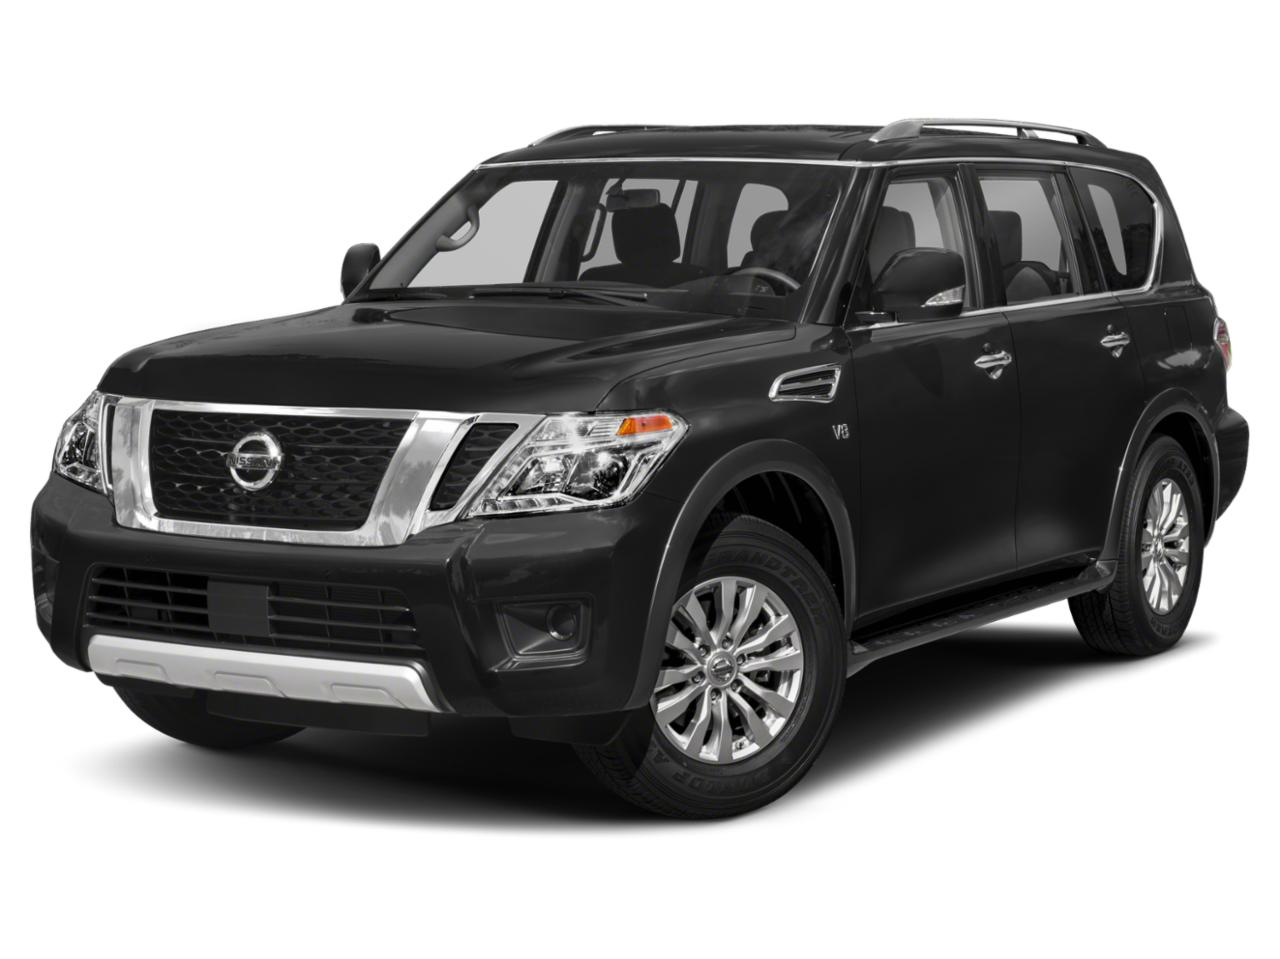 2018 Nissan Armada Vehicle Photo in BEND, OR 97701-5133